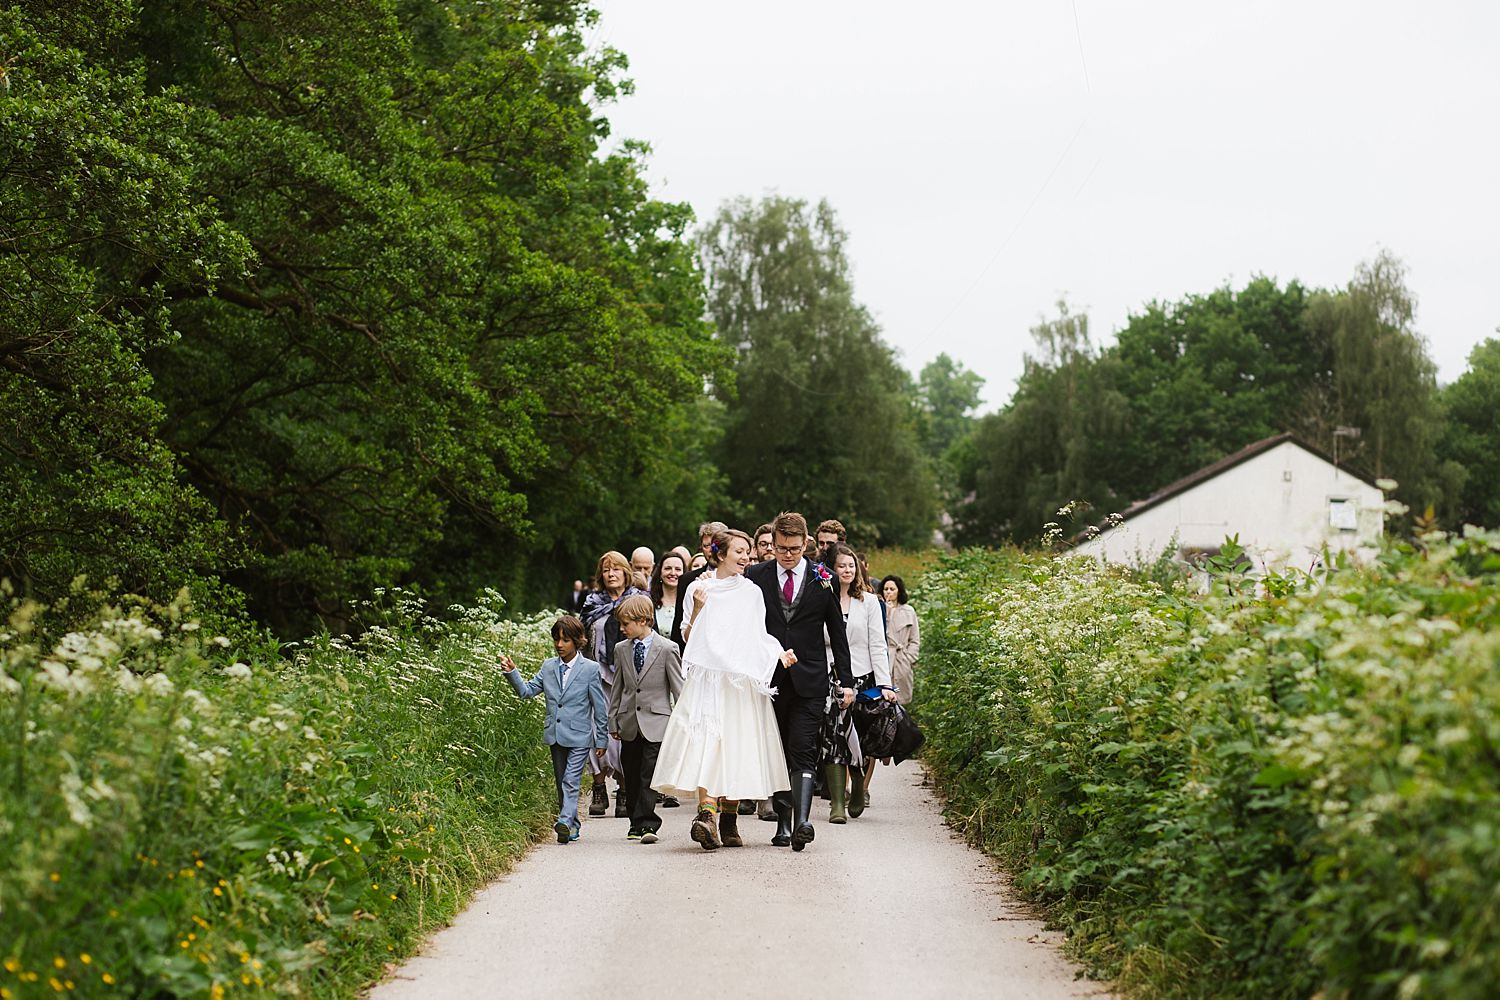 Bride and groom in wellies and walking boots, walk to reception at Park House Barn Milnthorpe